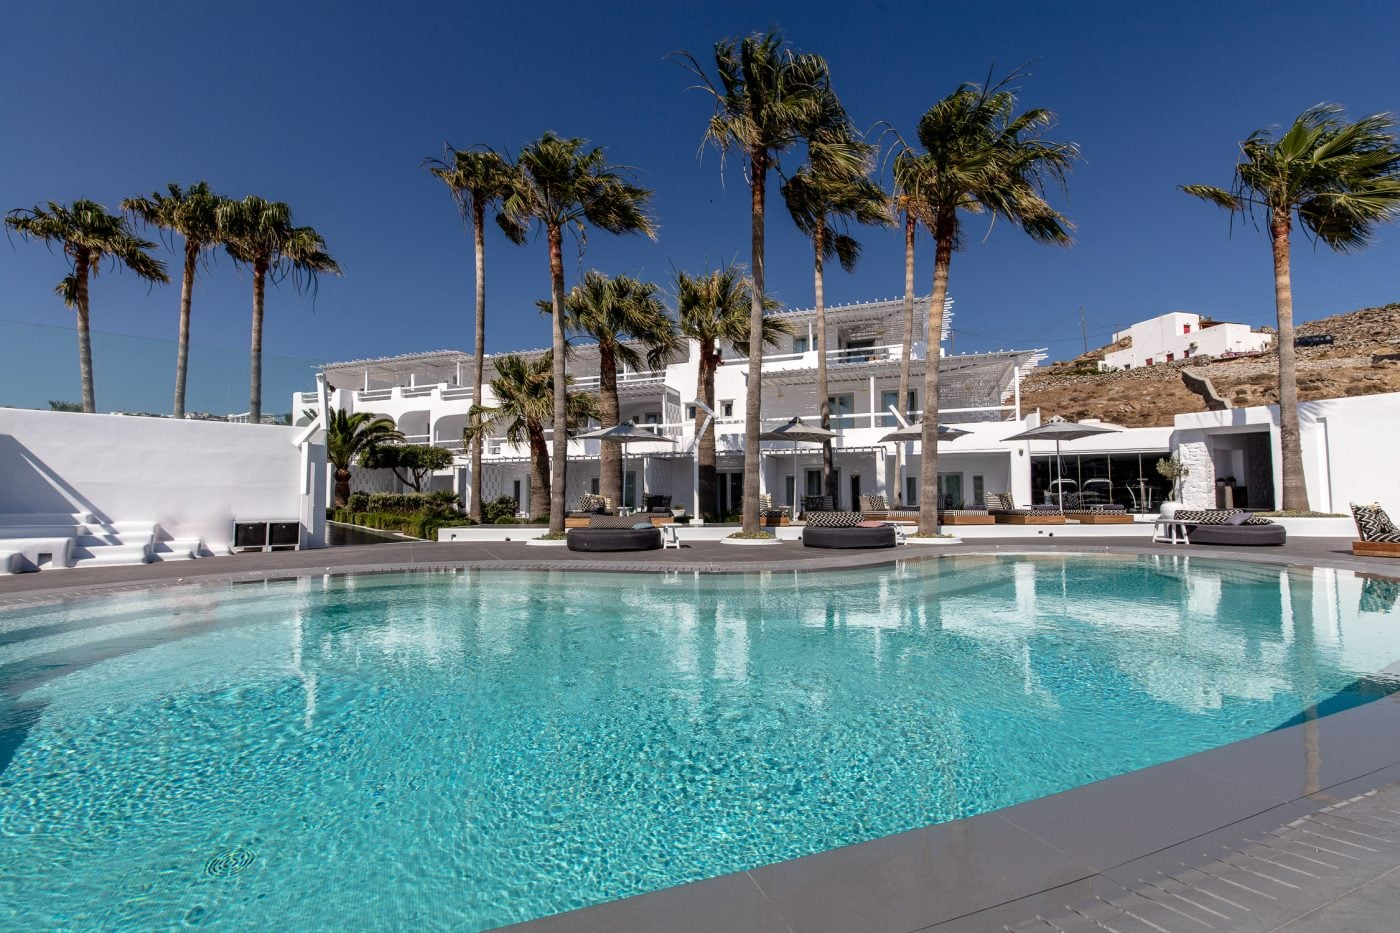 Palm trees and sunbeds by the pool at the 5- sta beachfront luxury Mykonos Blanc Hotel.